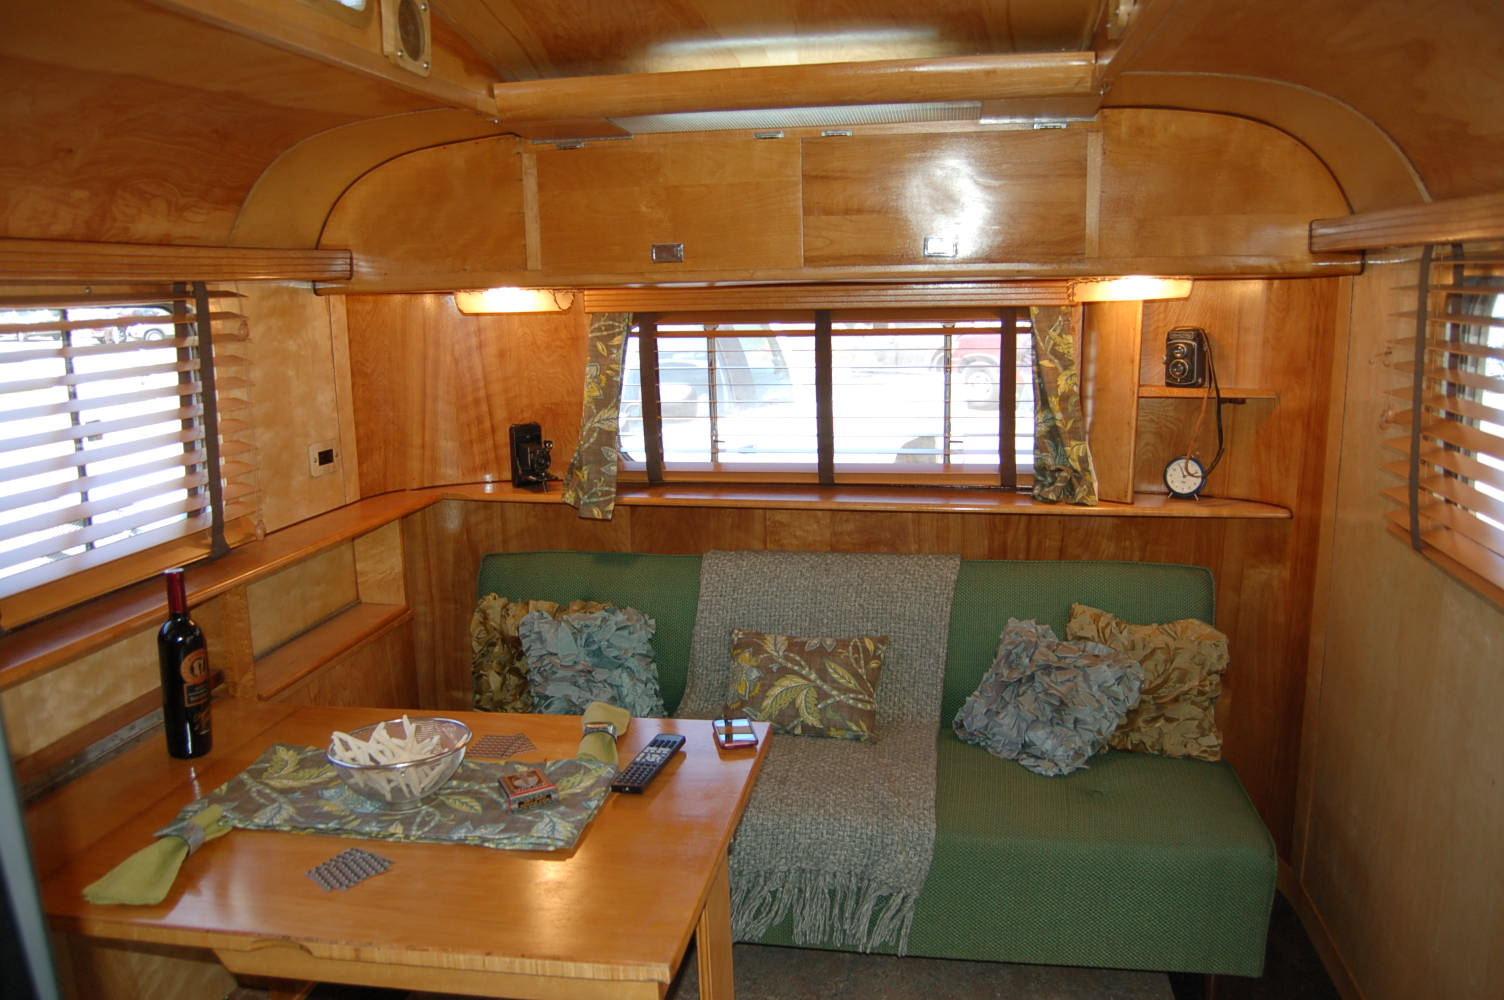 Vintage Trailer Interiors From The 1940 S From Oldtrailer Com